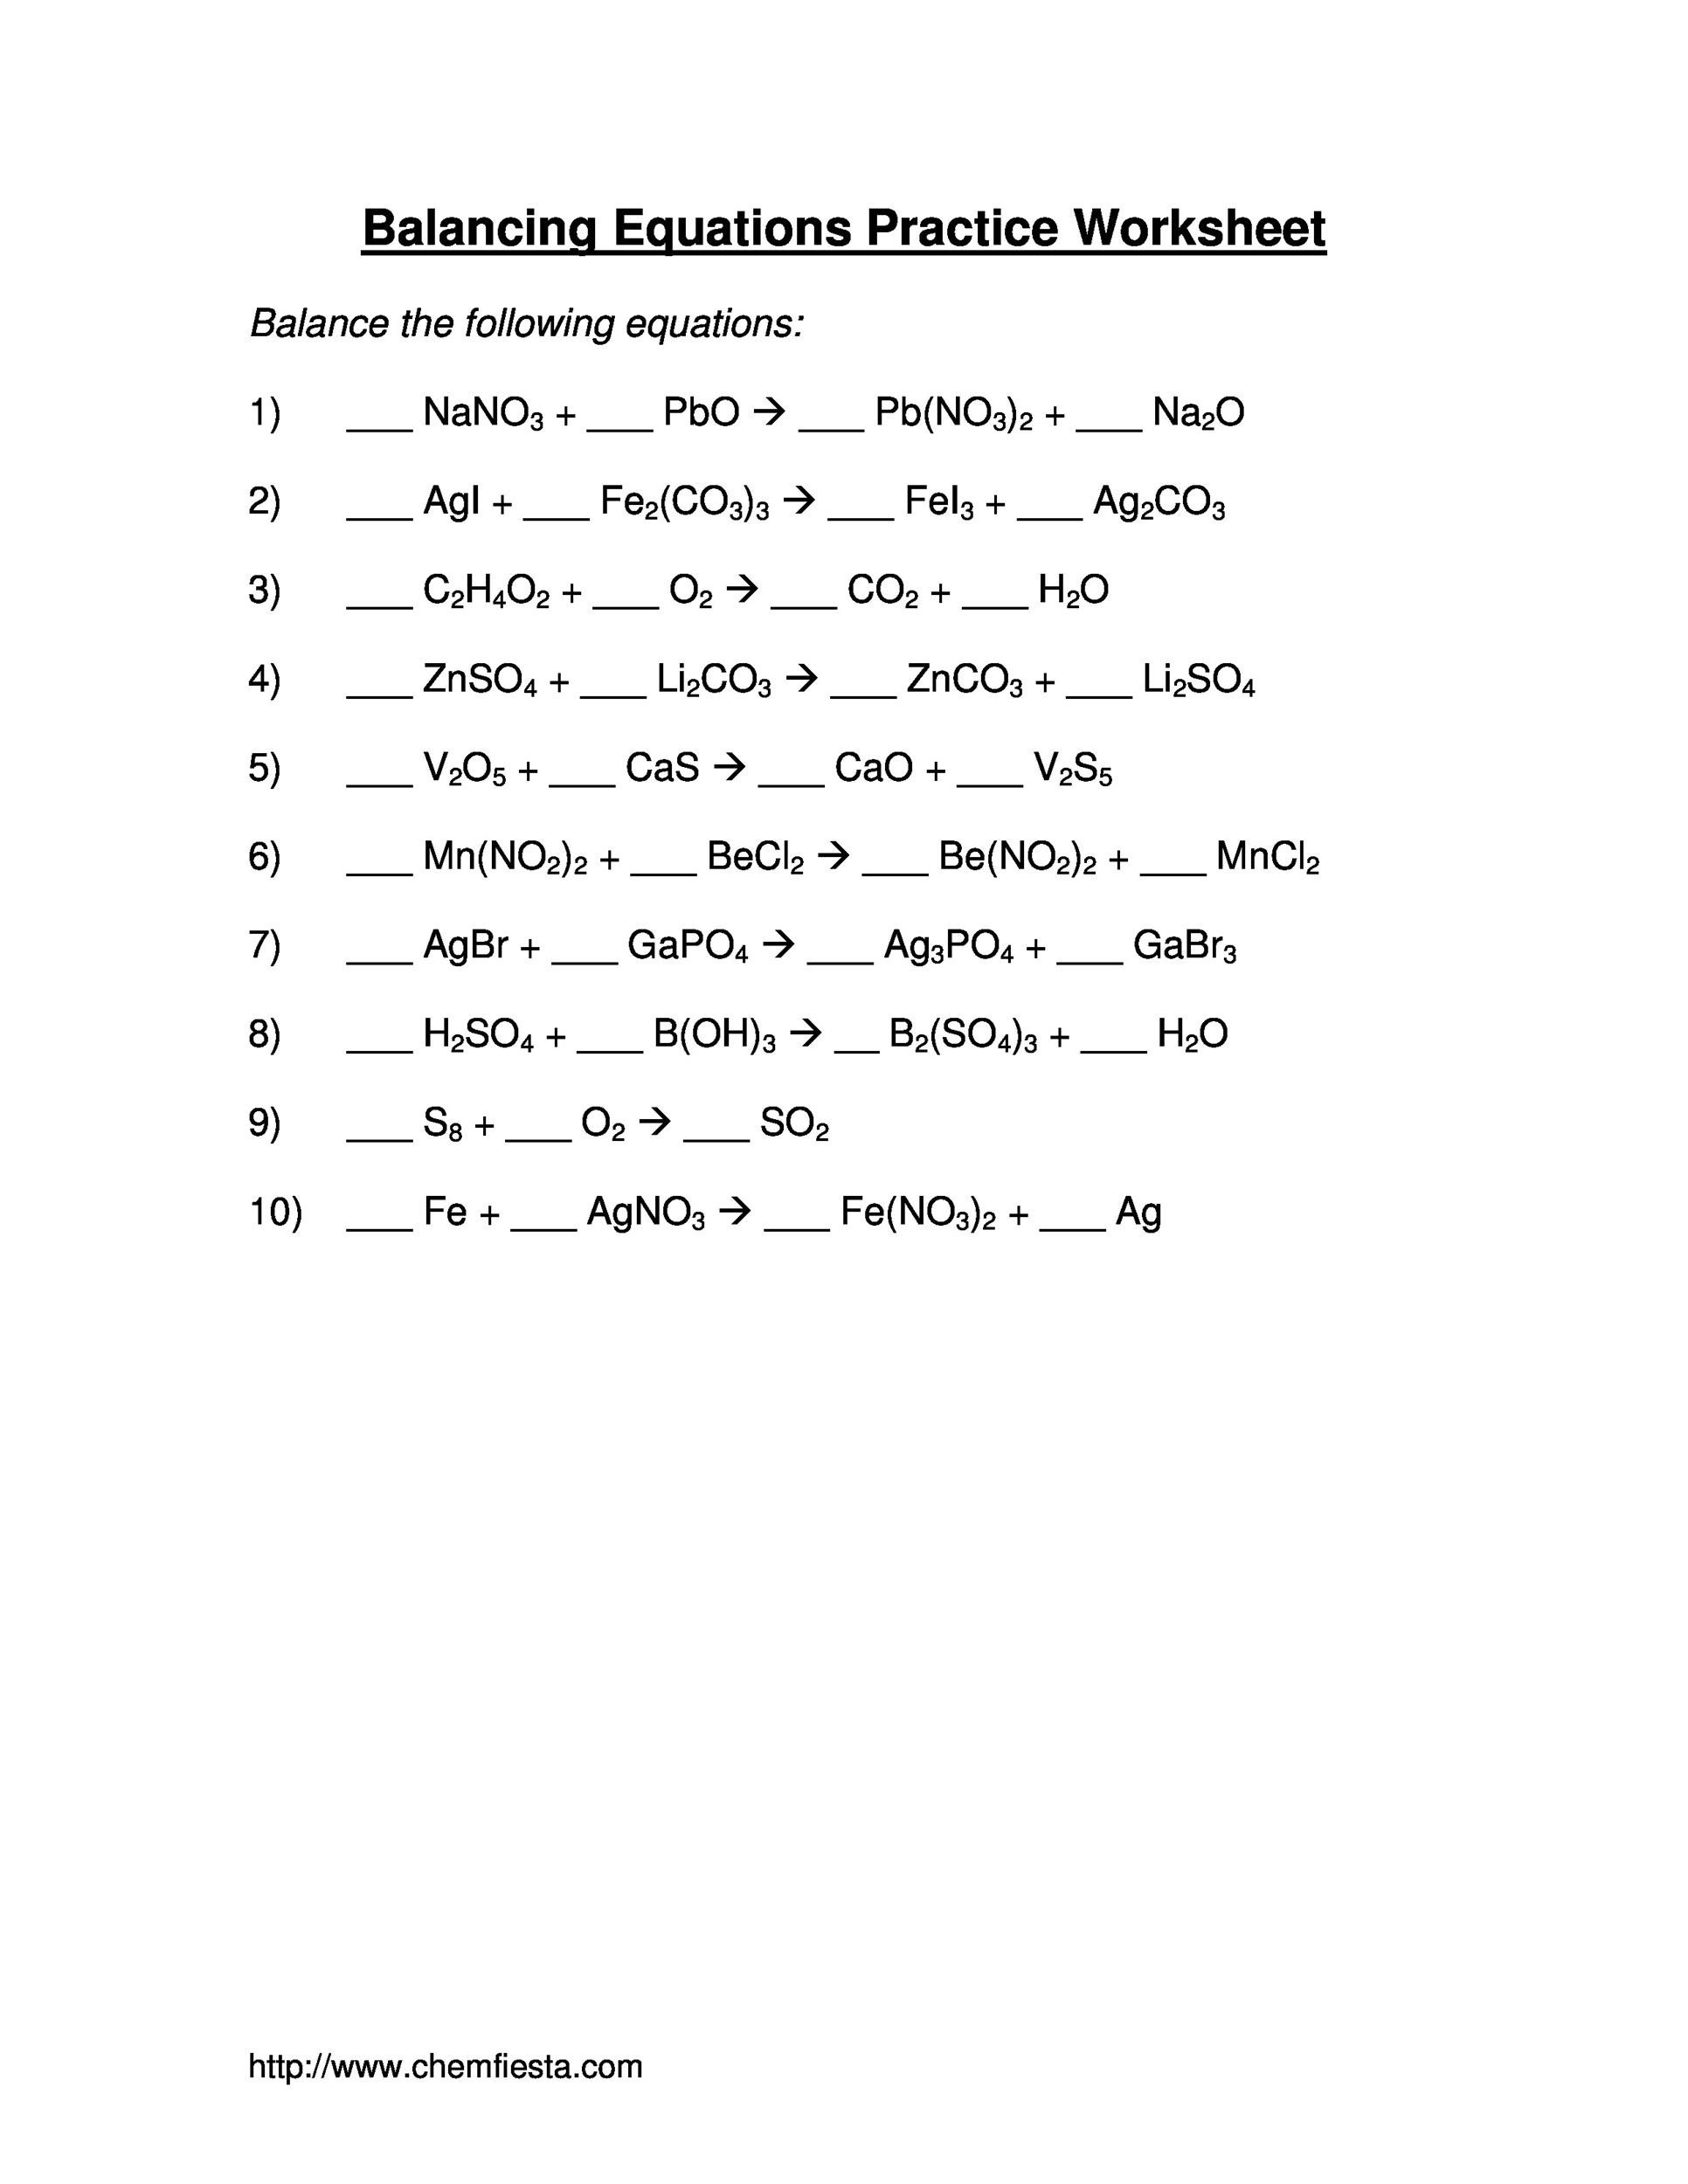 Balancing Equations Worksheet Answer Key Chemistry About Com ...